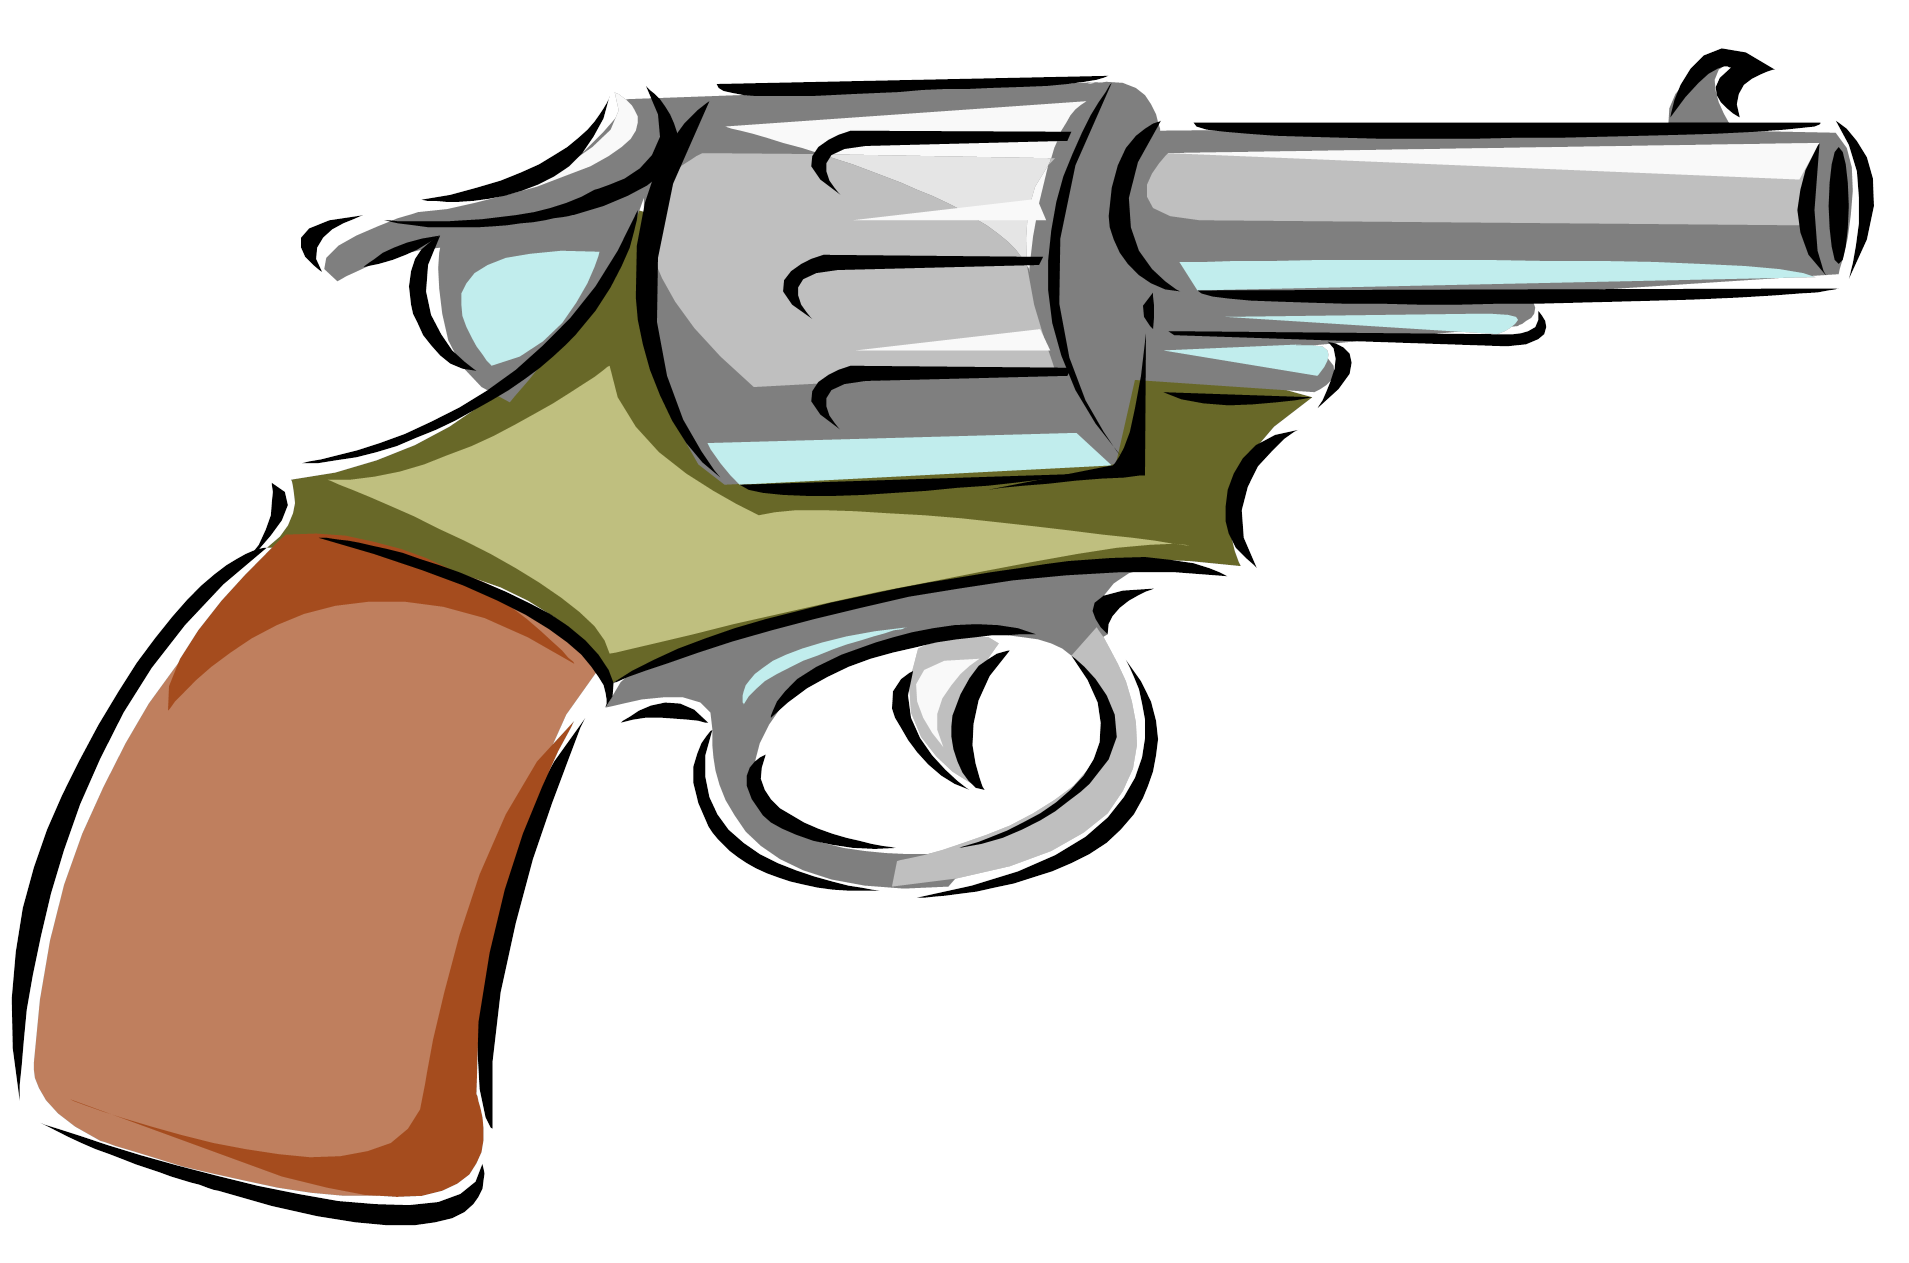 Weapon clip concealed carry. Pistol png transparent